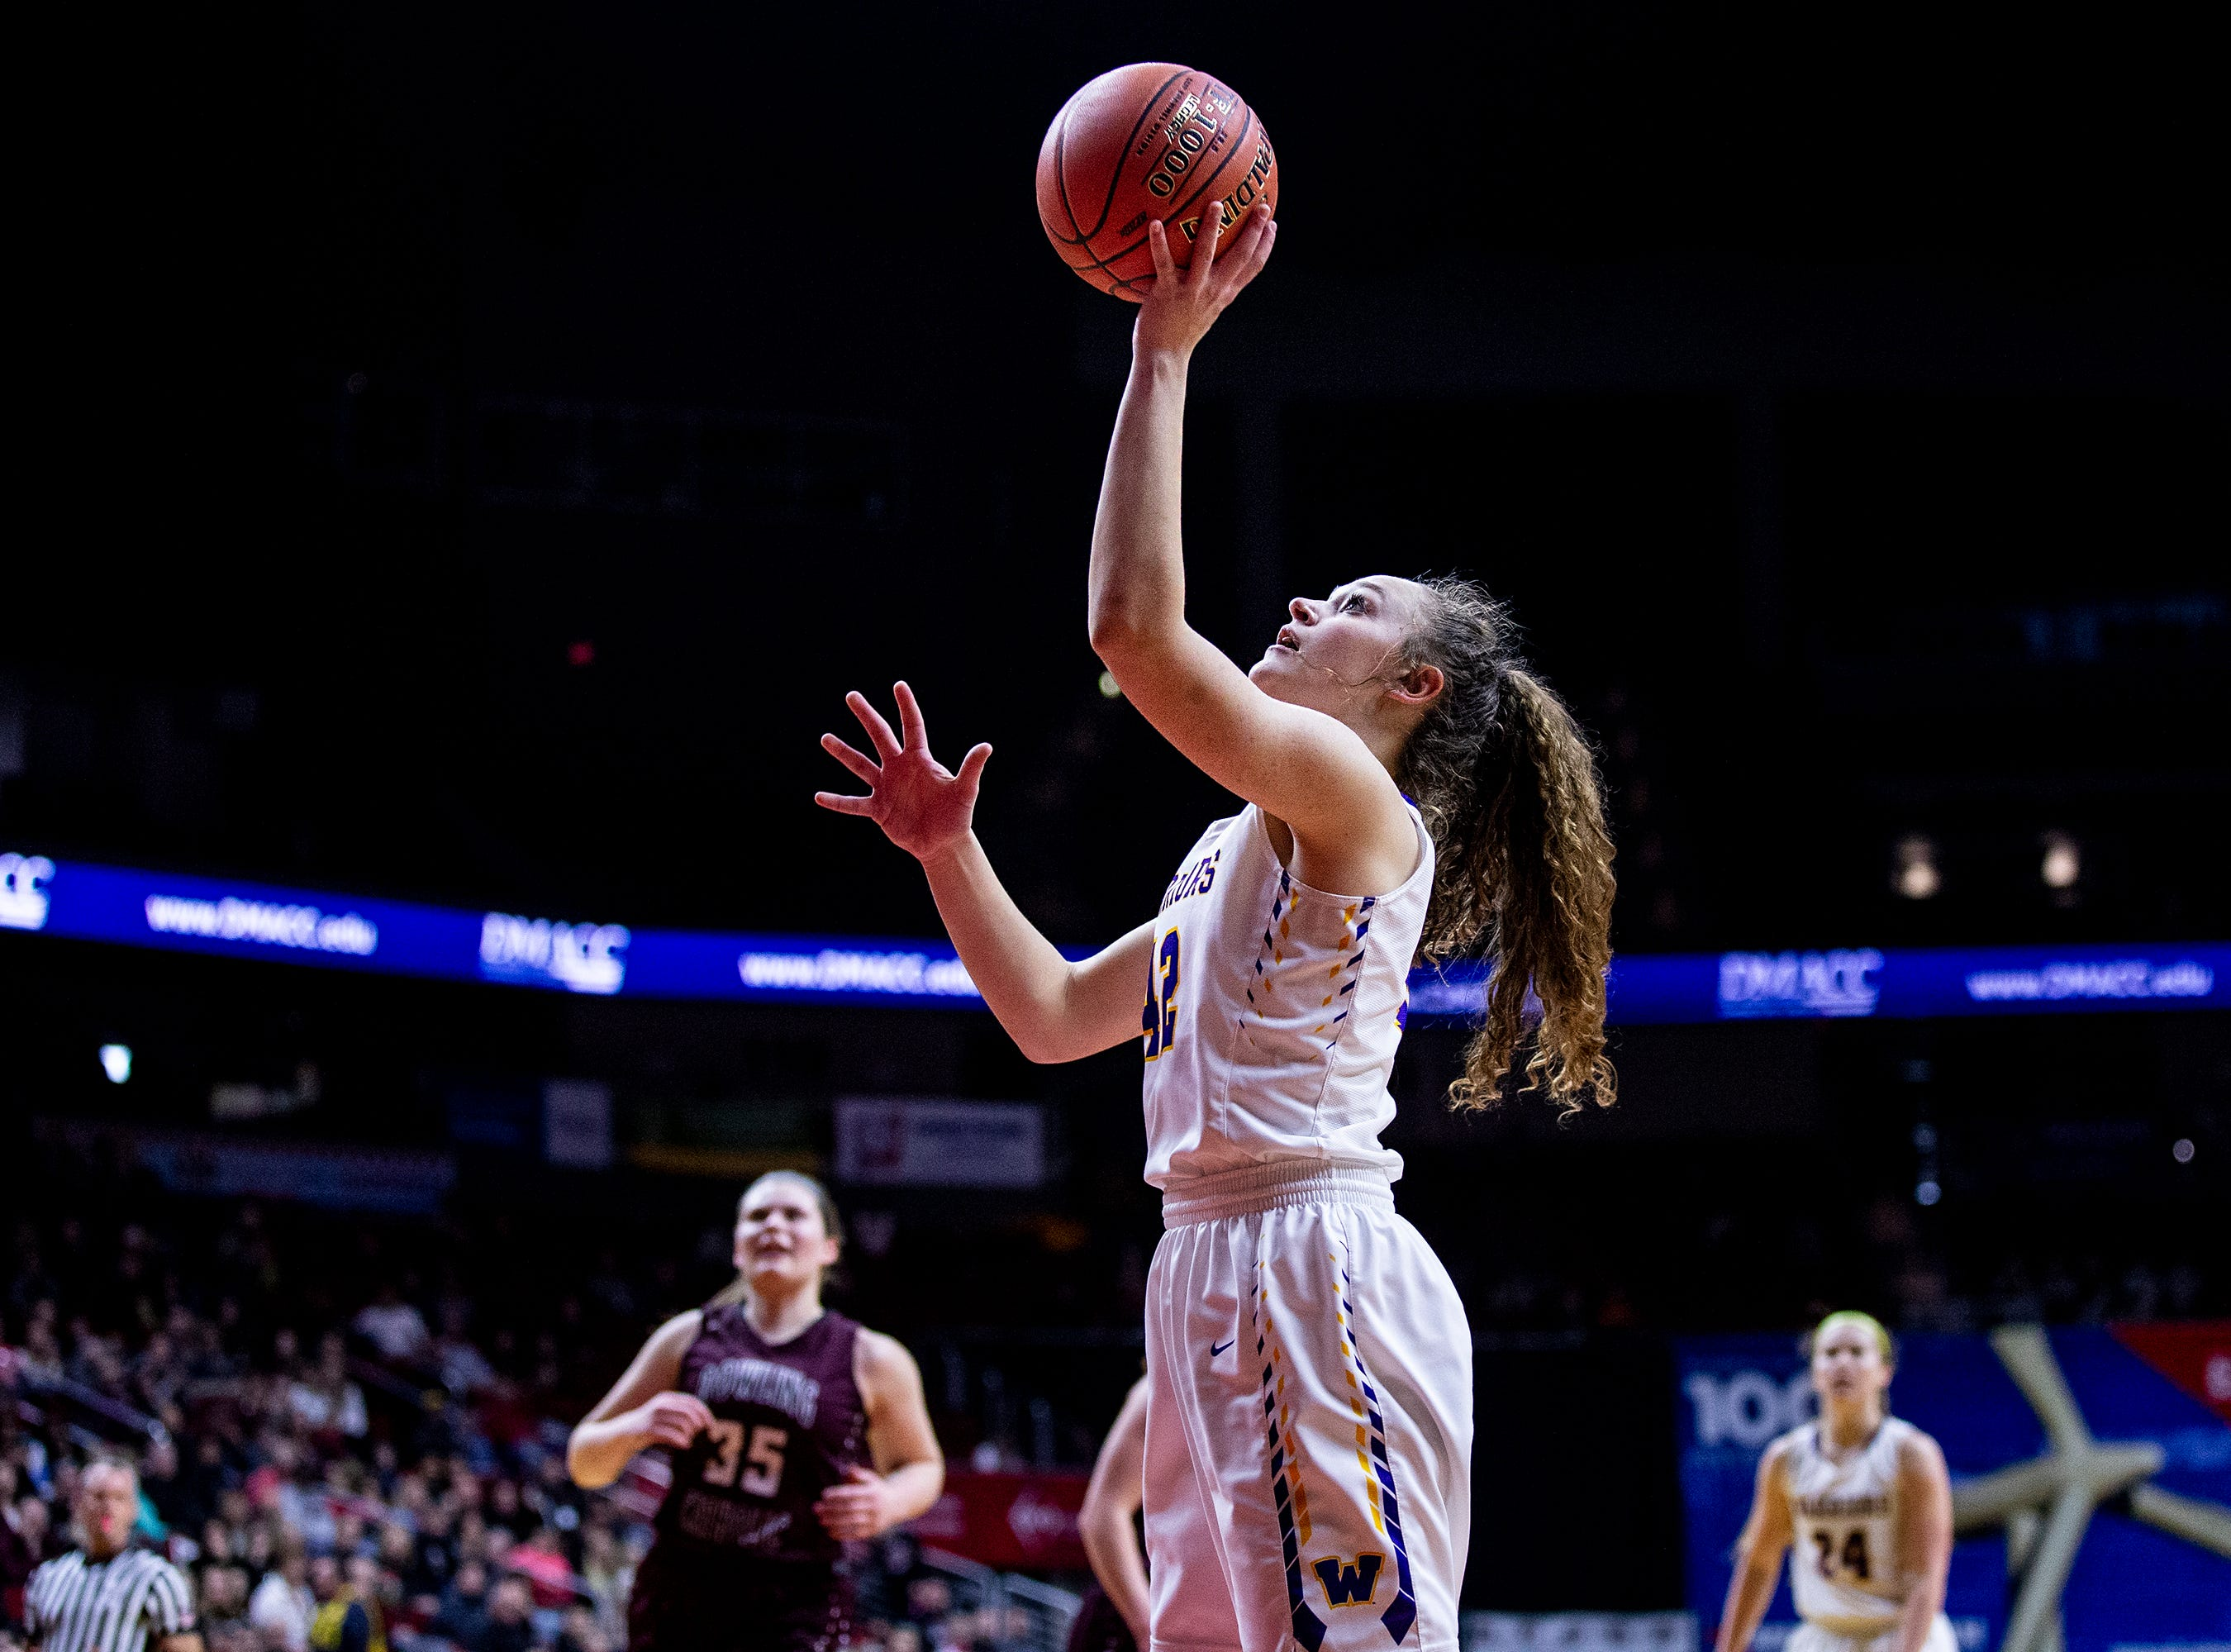 Waukee's Taryn Reitsma shoots the ball during the Class 5A Iowa girls' state basketball tournament quarterfinal between Dowling Catholic and Waukee on Monday, Feb. 25, 2019, in Wells Fargo Arena.